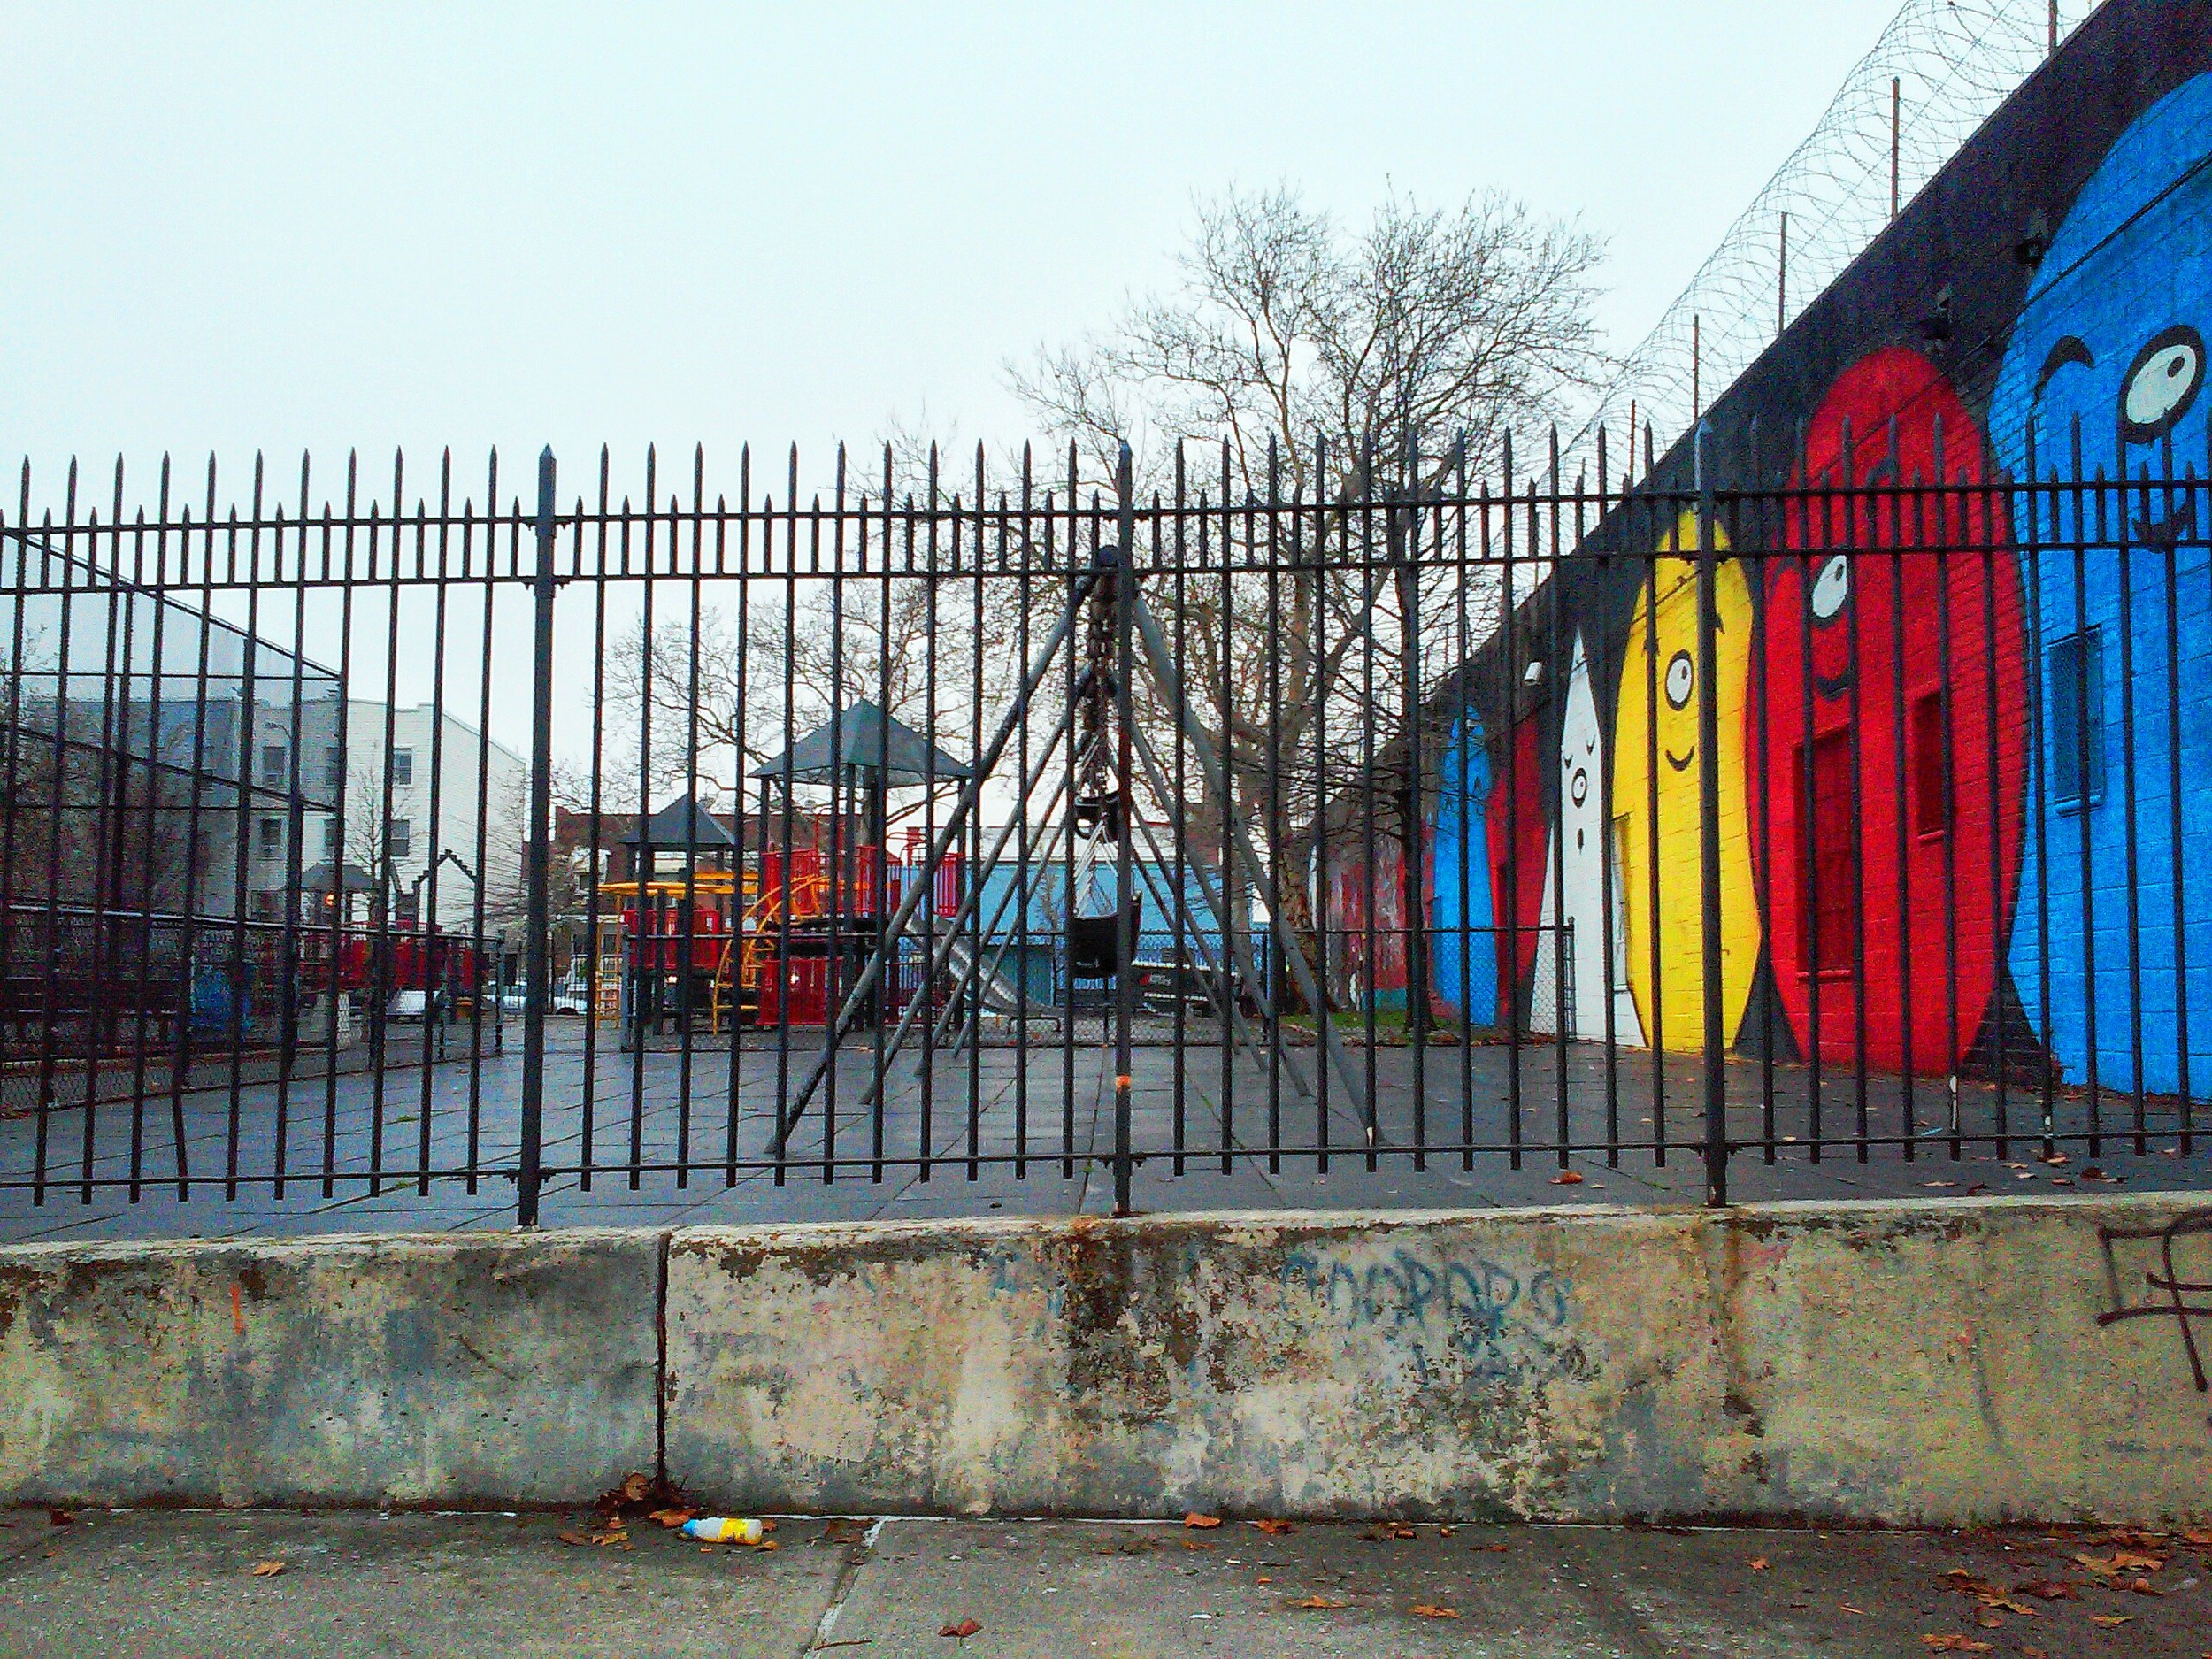 playground-in-brooklyn-wbc.jpg